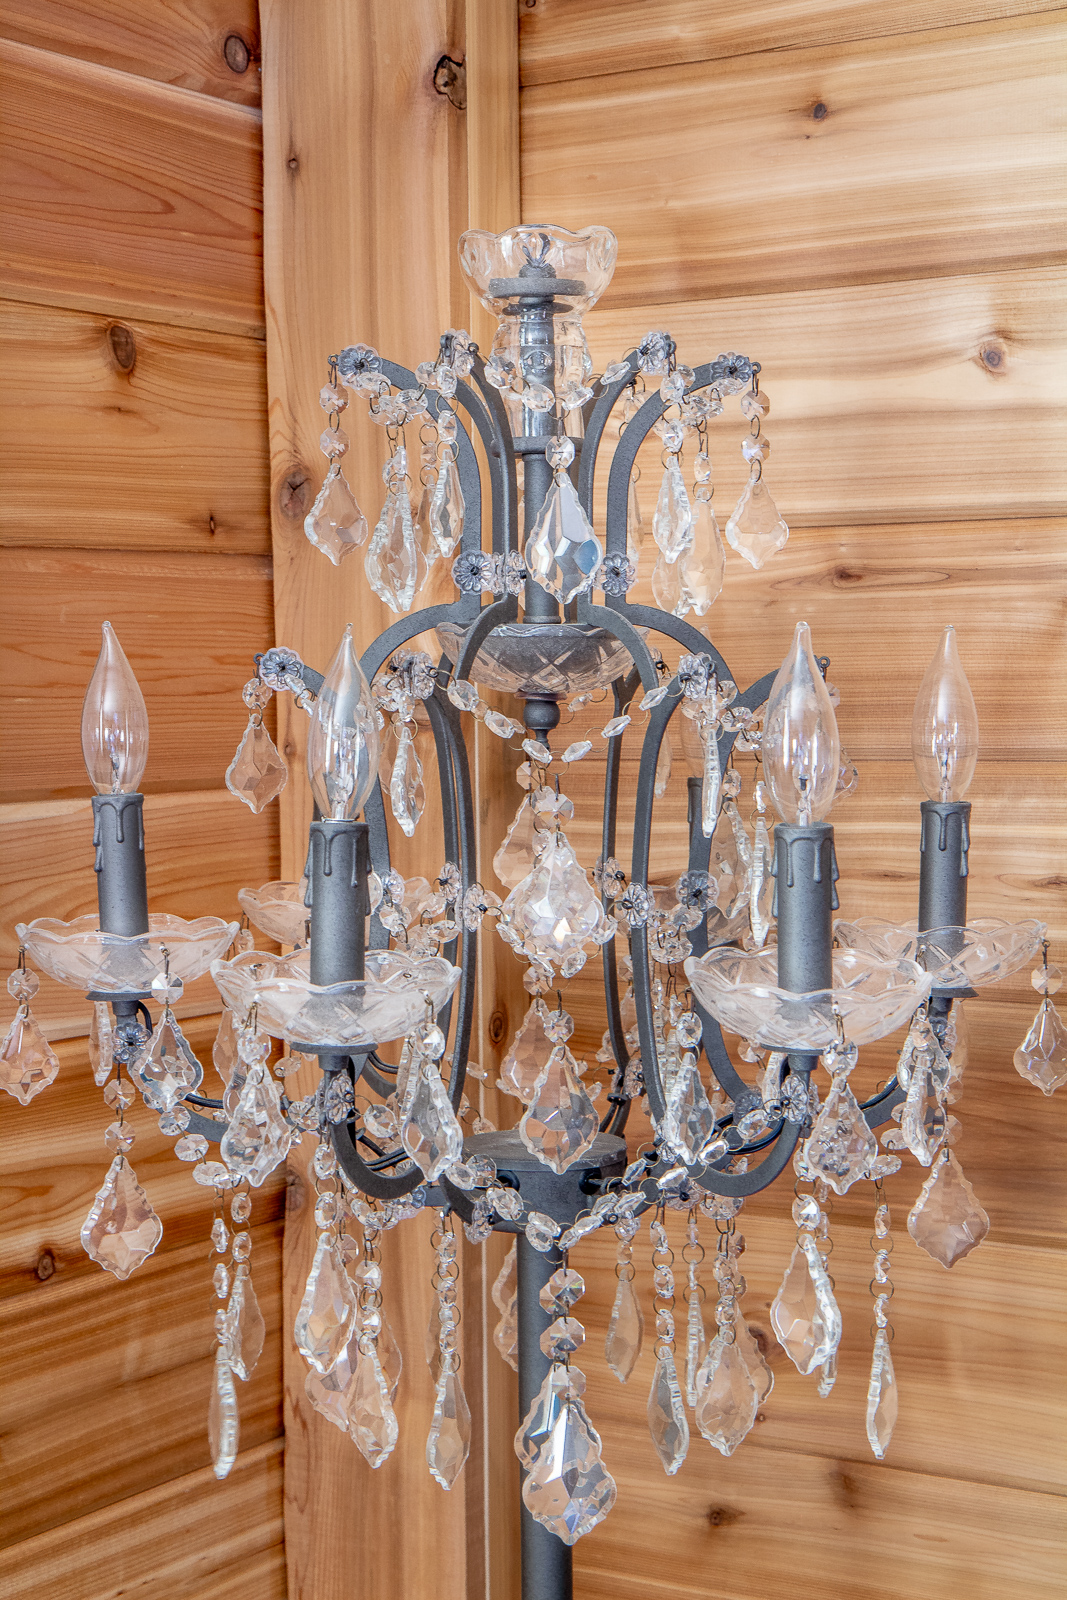 Restoration Hardware knock off chandelier lamp